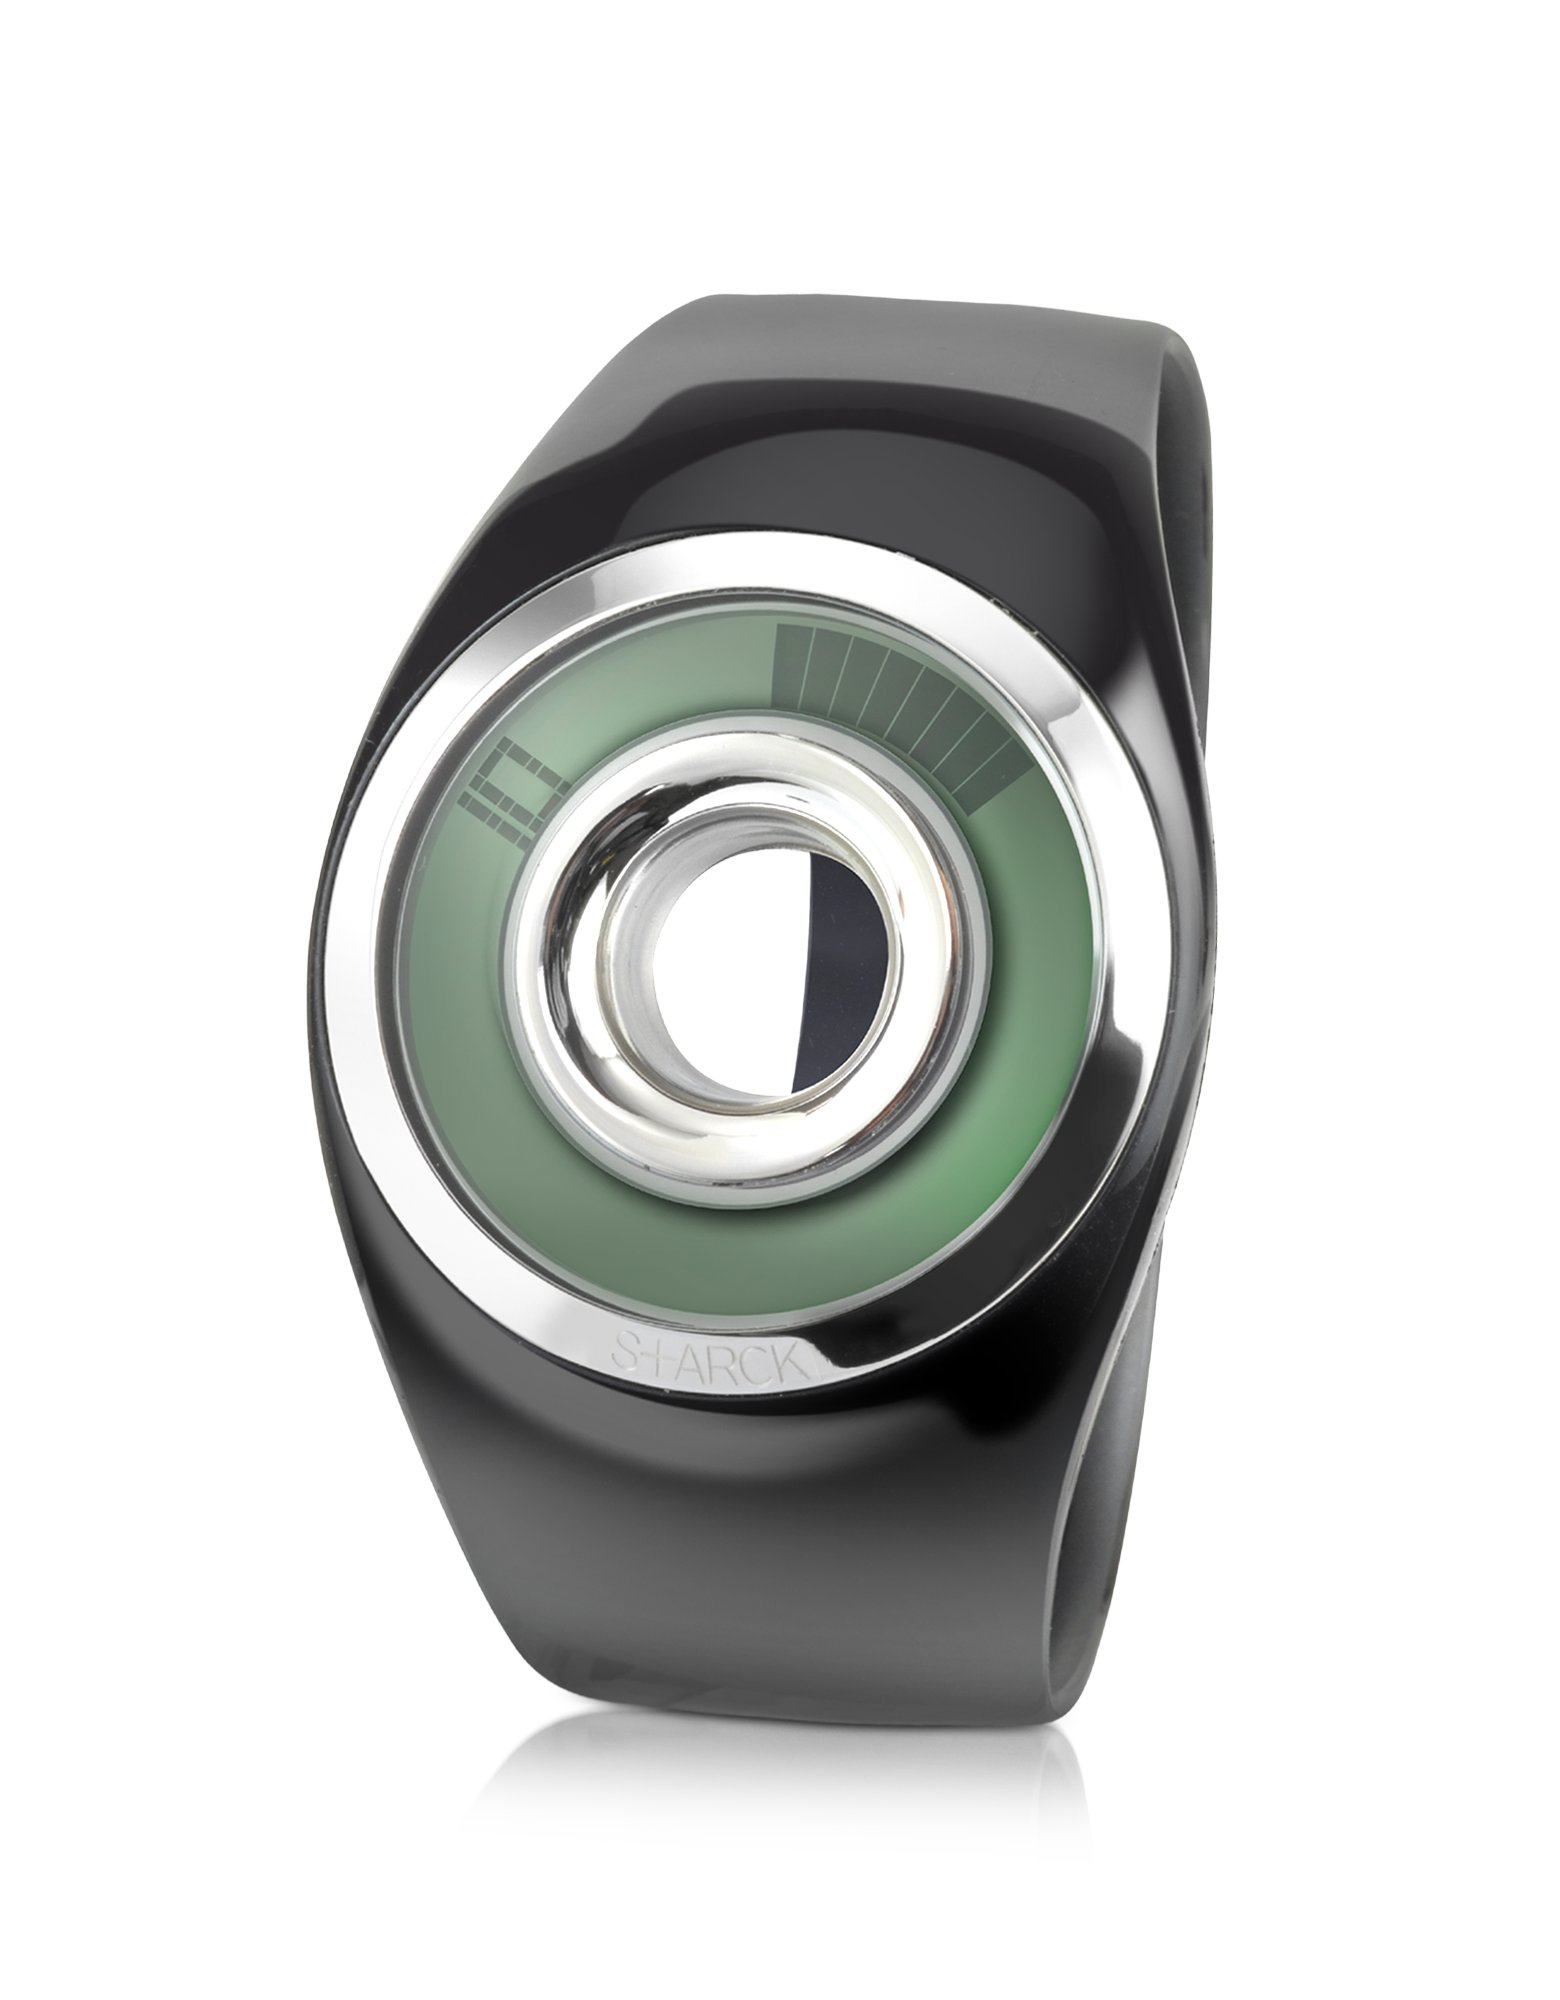 Lyst - Philippe Starck Shiny Black O-ring Watch in Black for Men